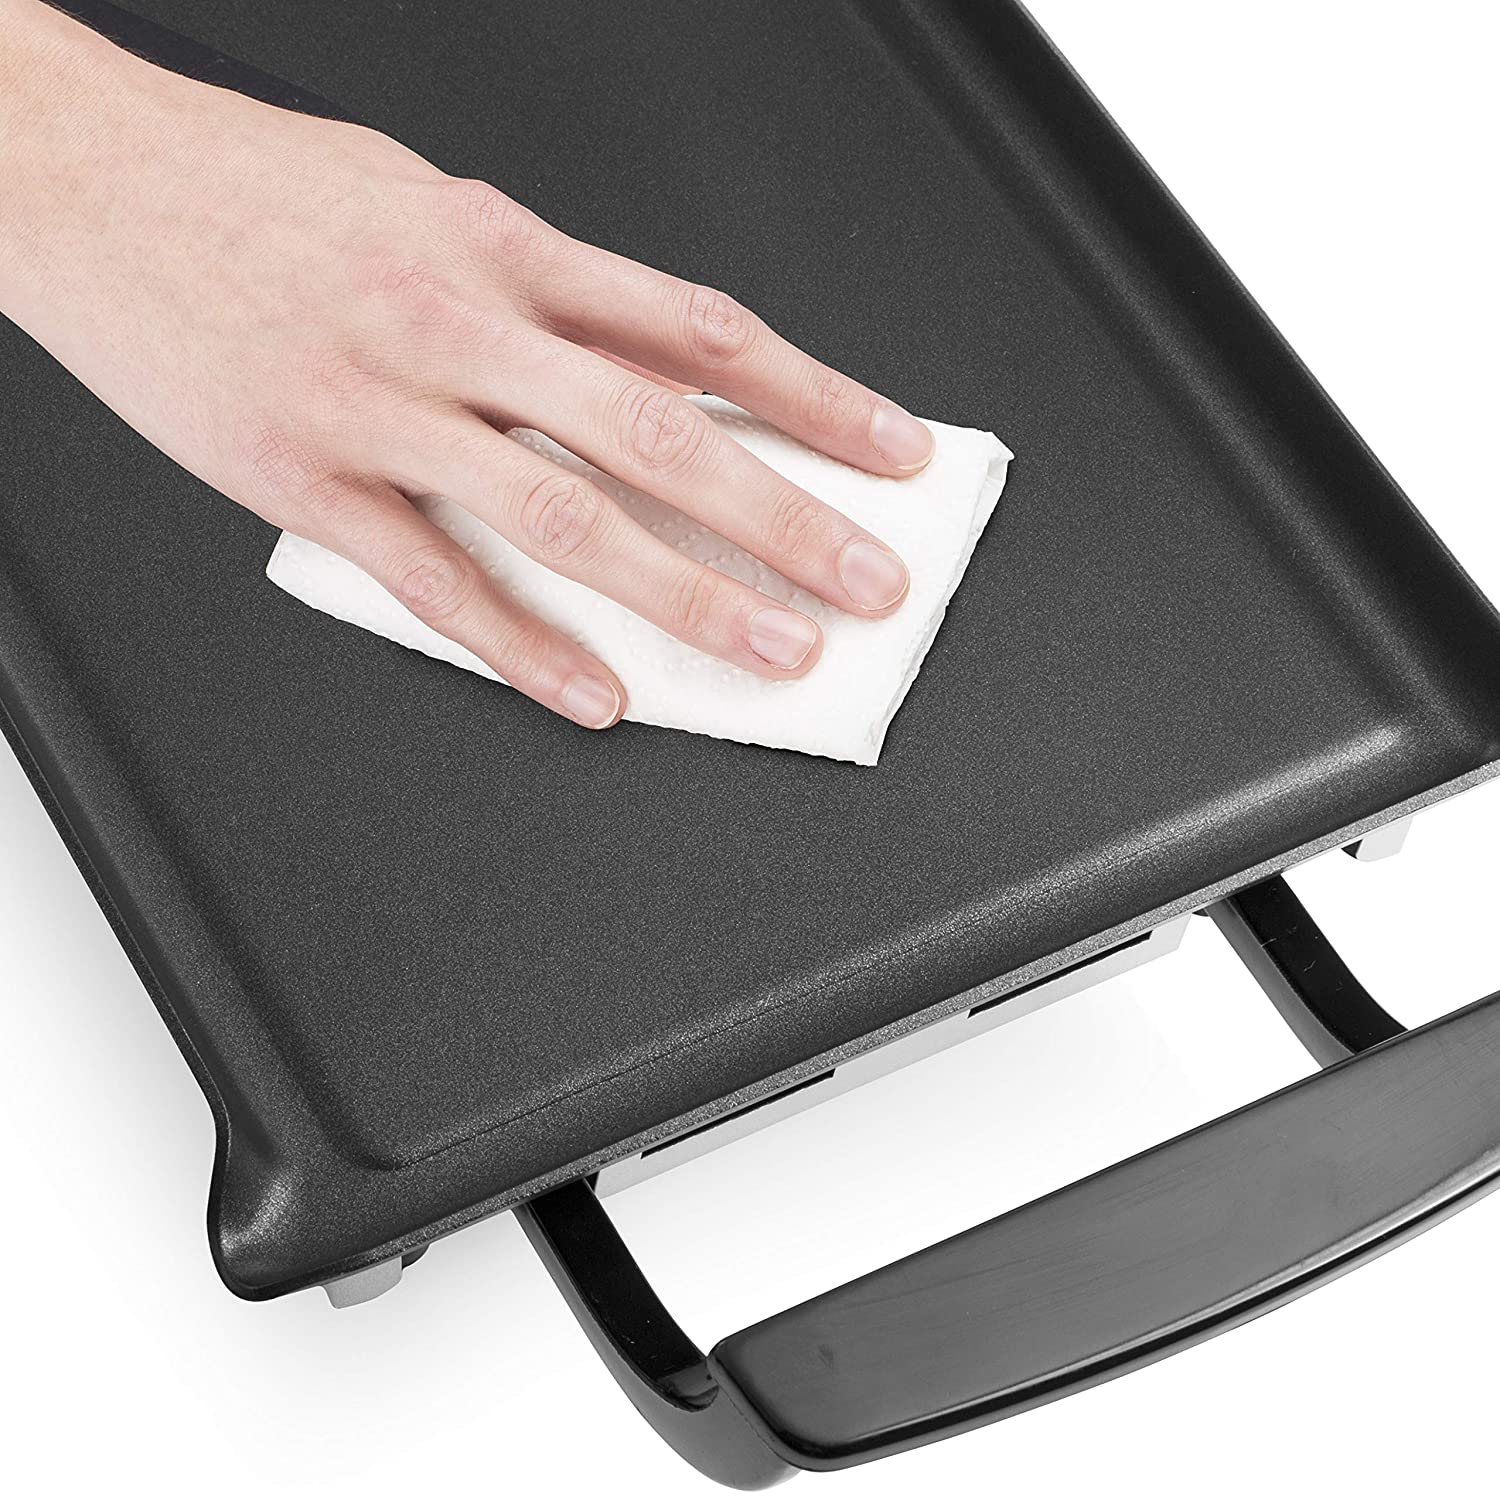 Princess 102209 Economy Table Chef Plancha, 1800 W, Negro: Amazon.es: Hogar